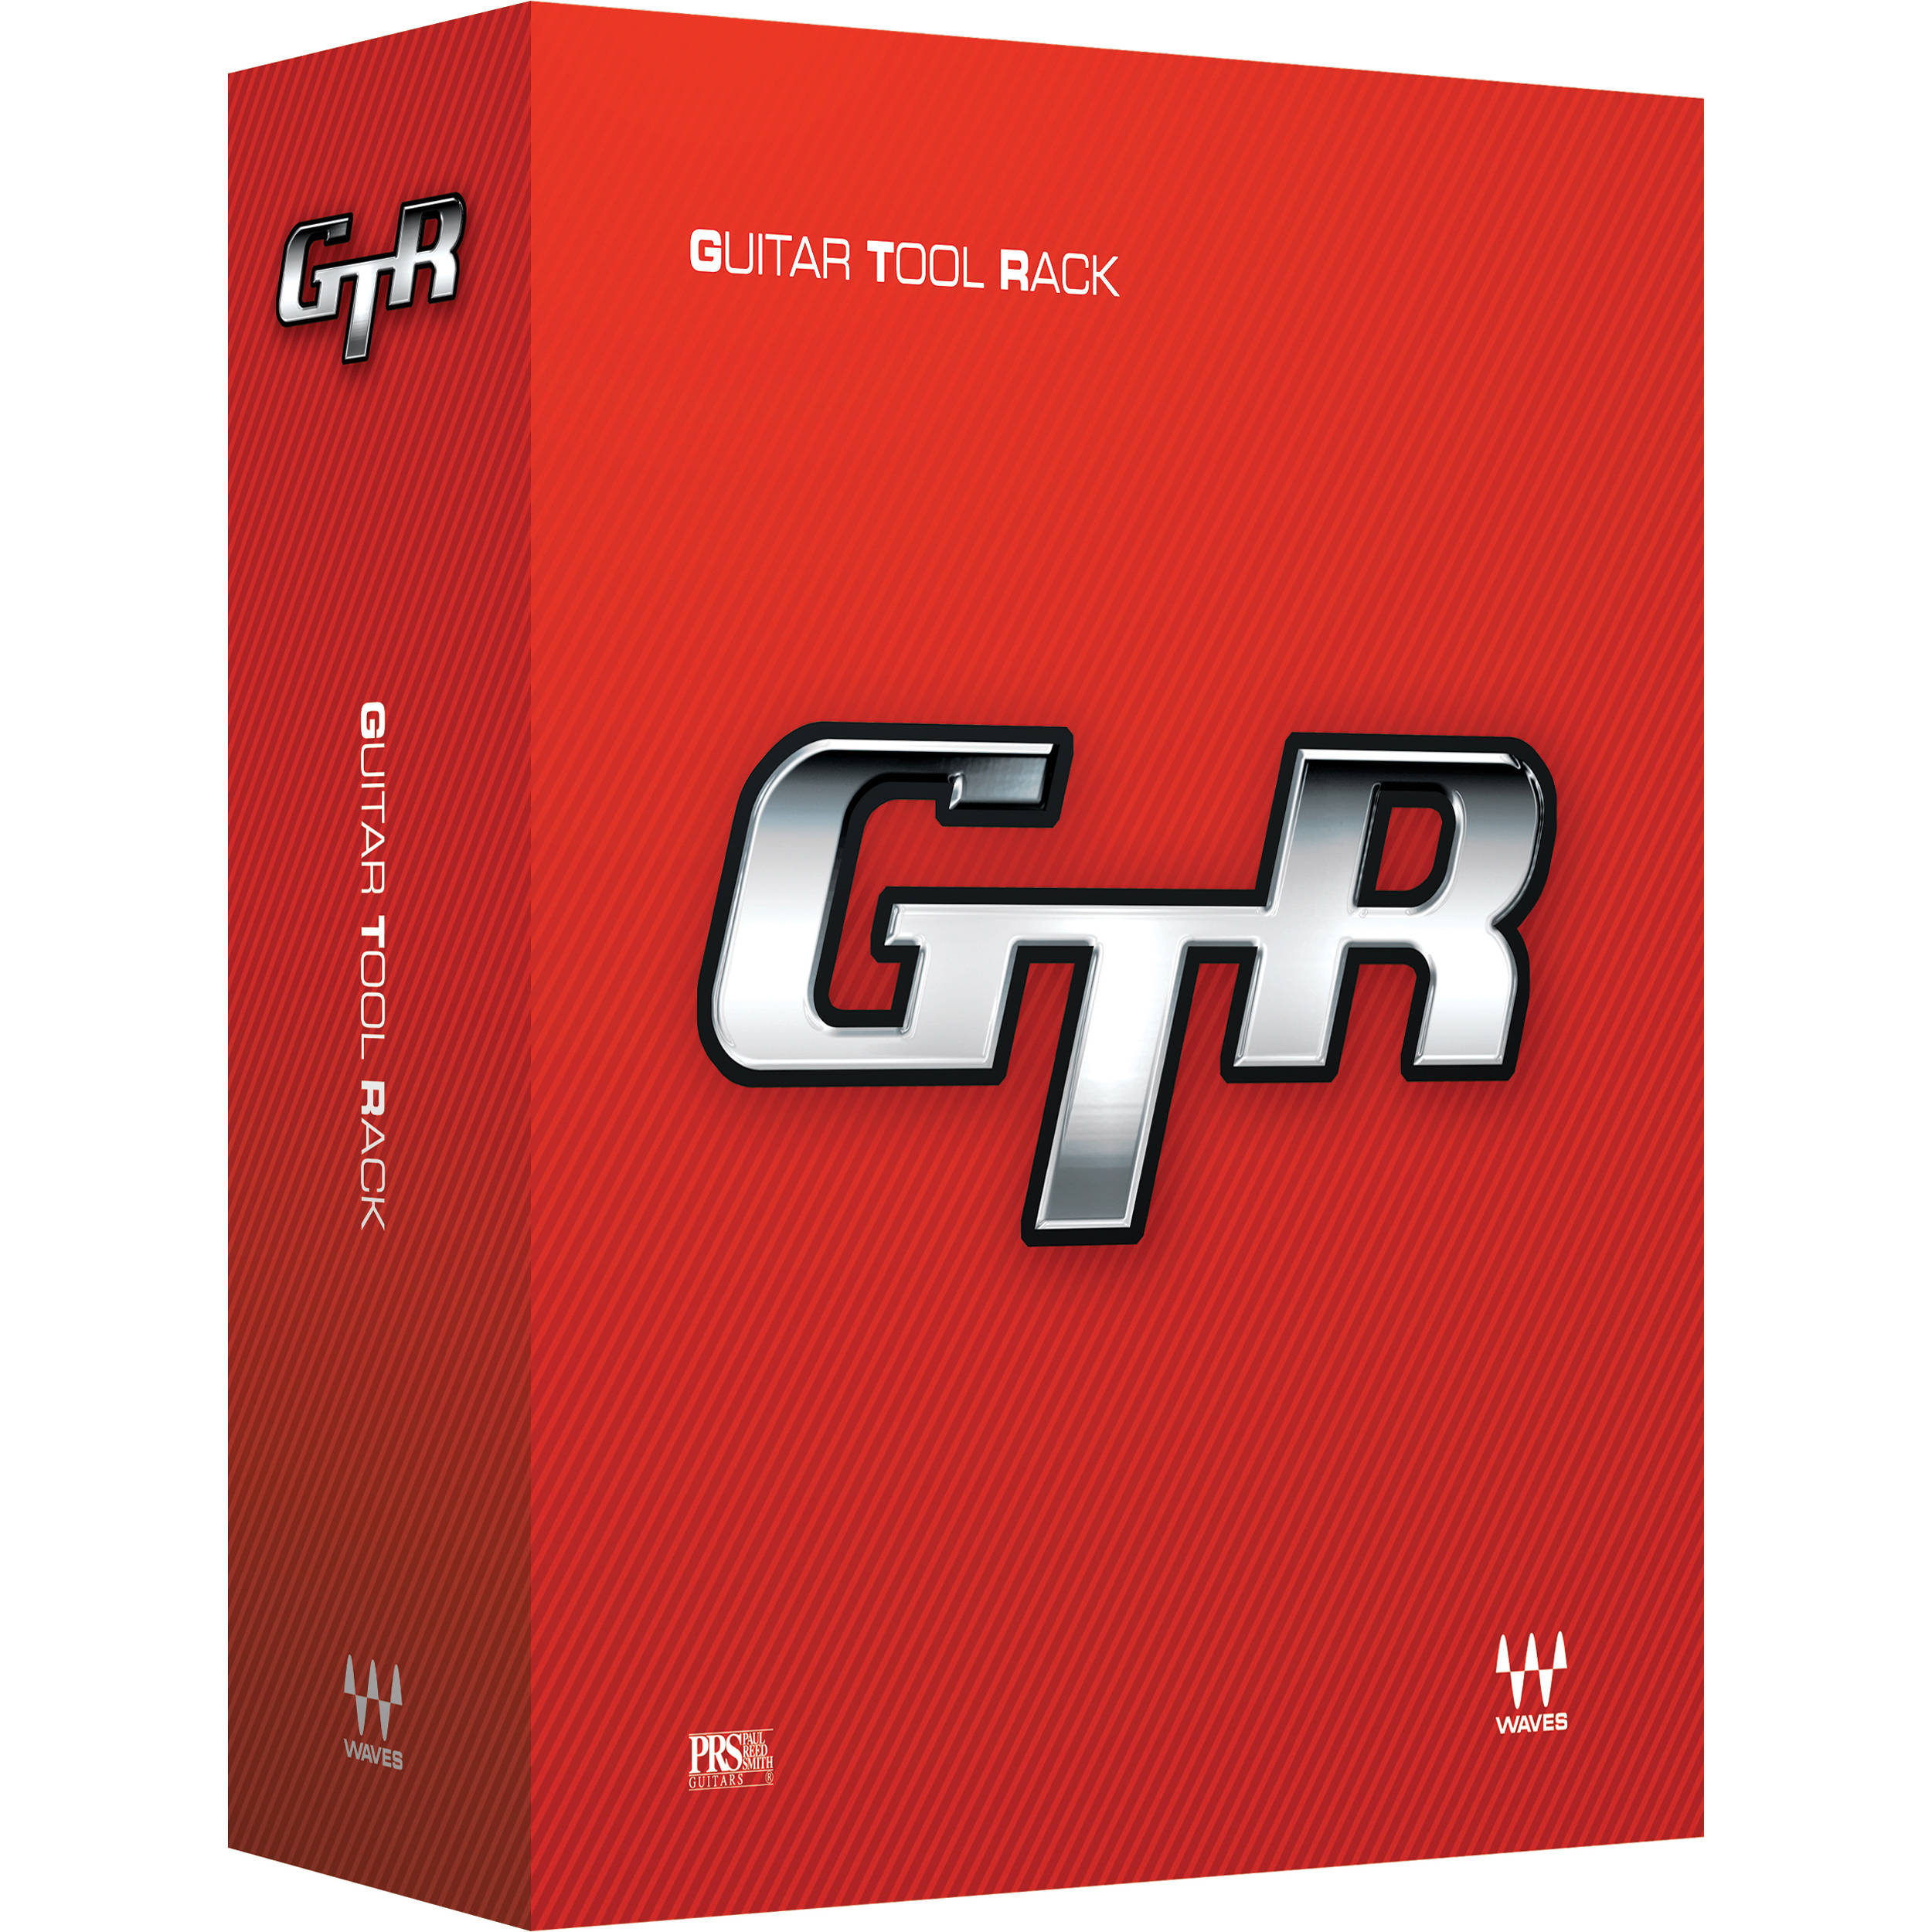 Waves gtr3 toolrack (digital download) | samash.